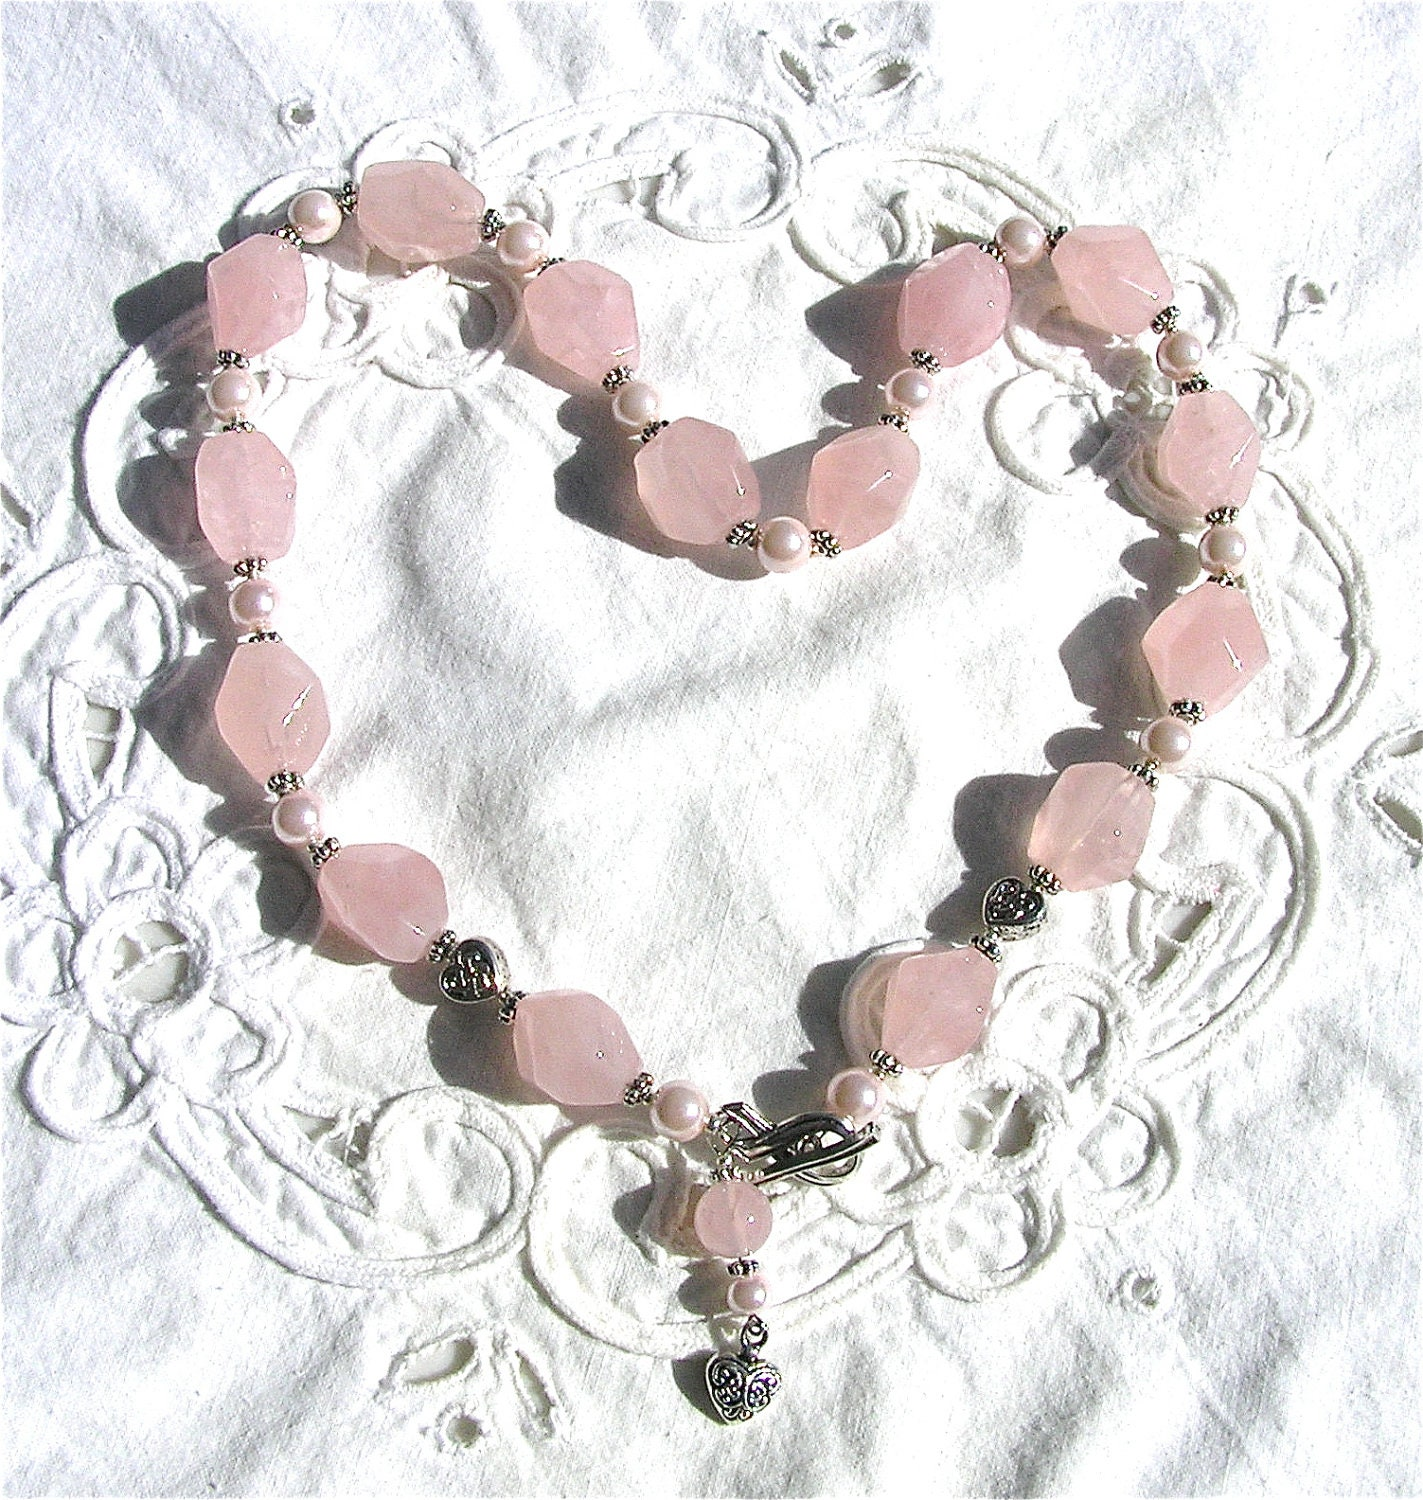 Necklace Rose Quartz Nuggets Pearls & Pink Ribbon Clasp w/ Heart Charm  Mind4Design